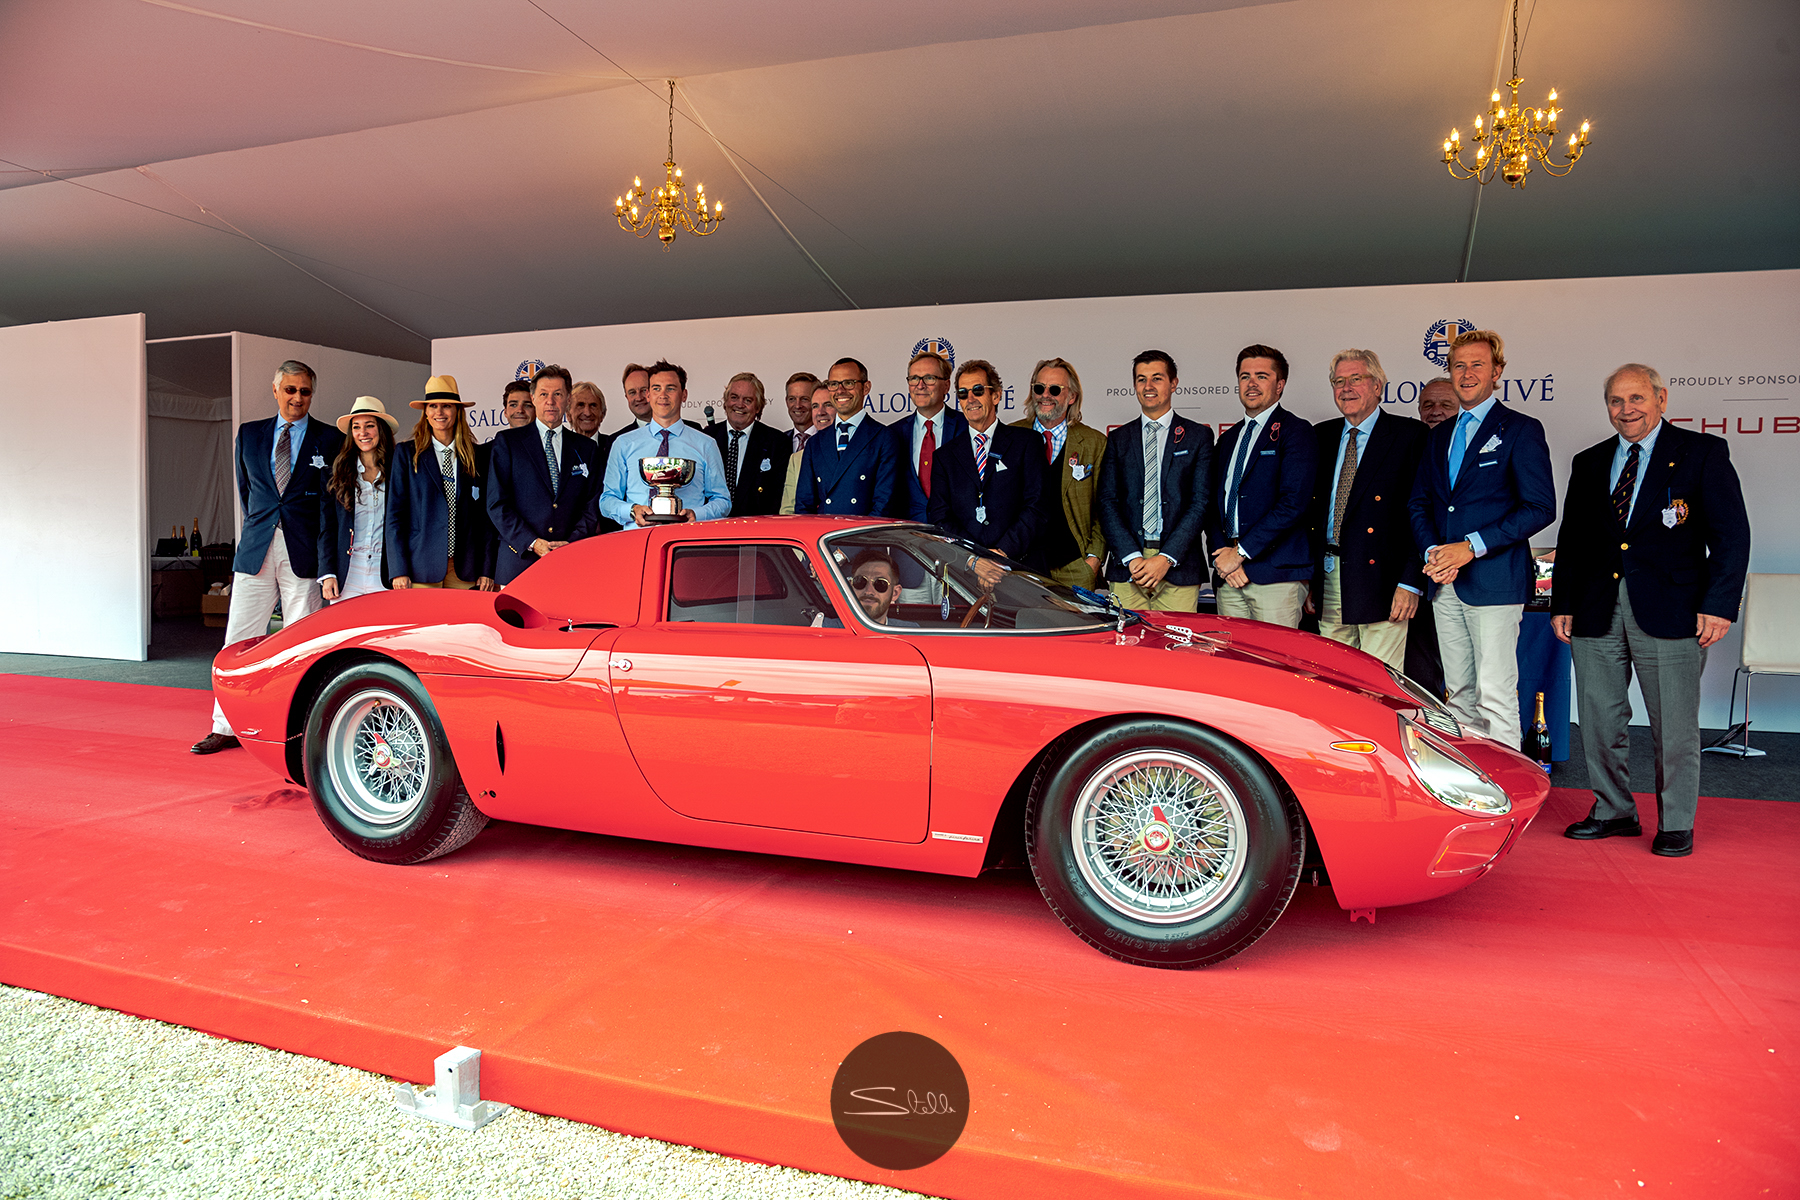 Stella Scordellis Salon Prive 2018 79 Watermarked.jpg